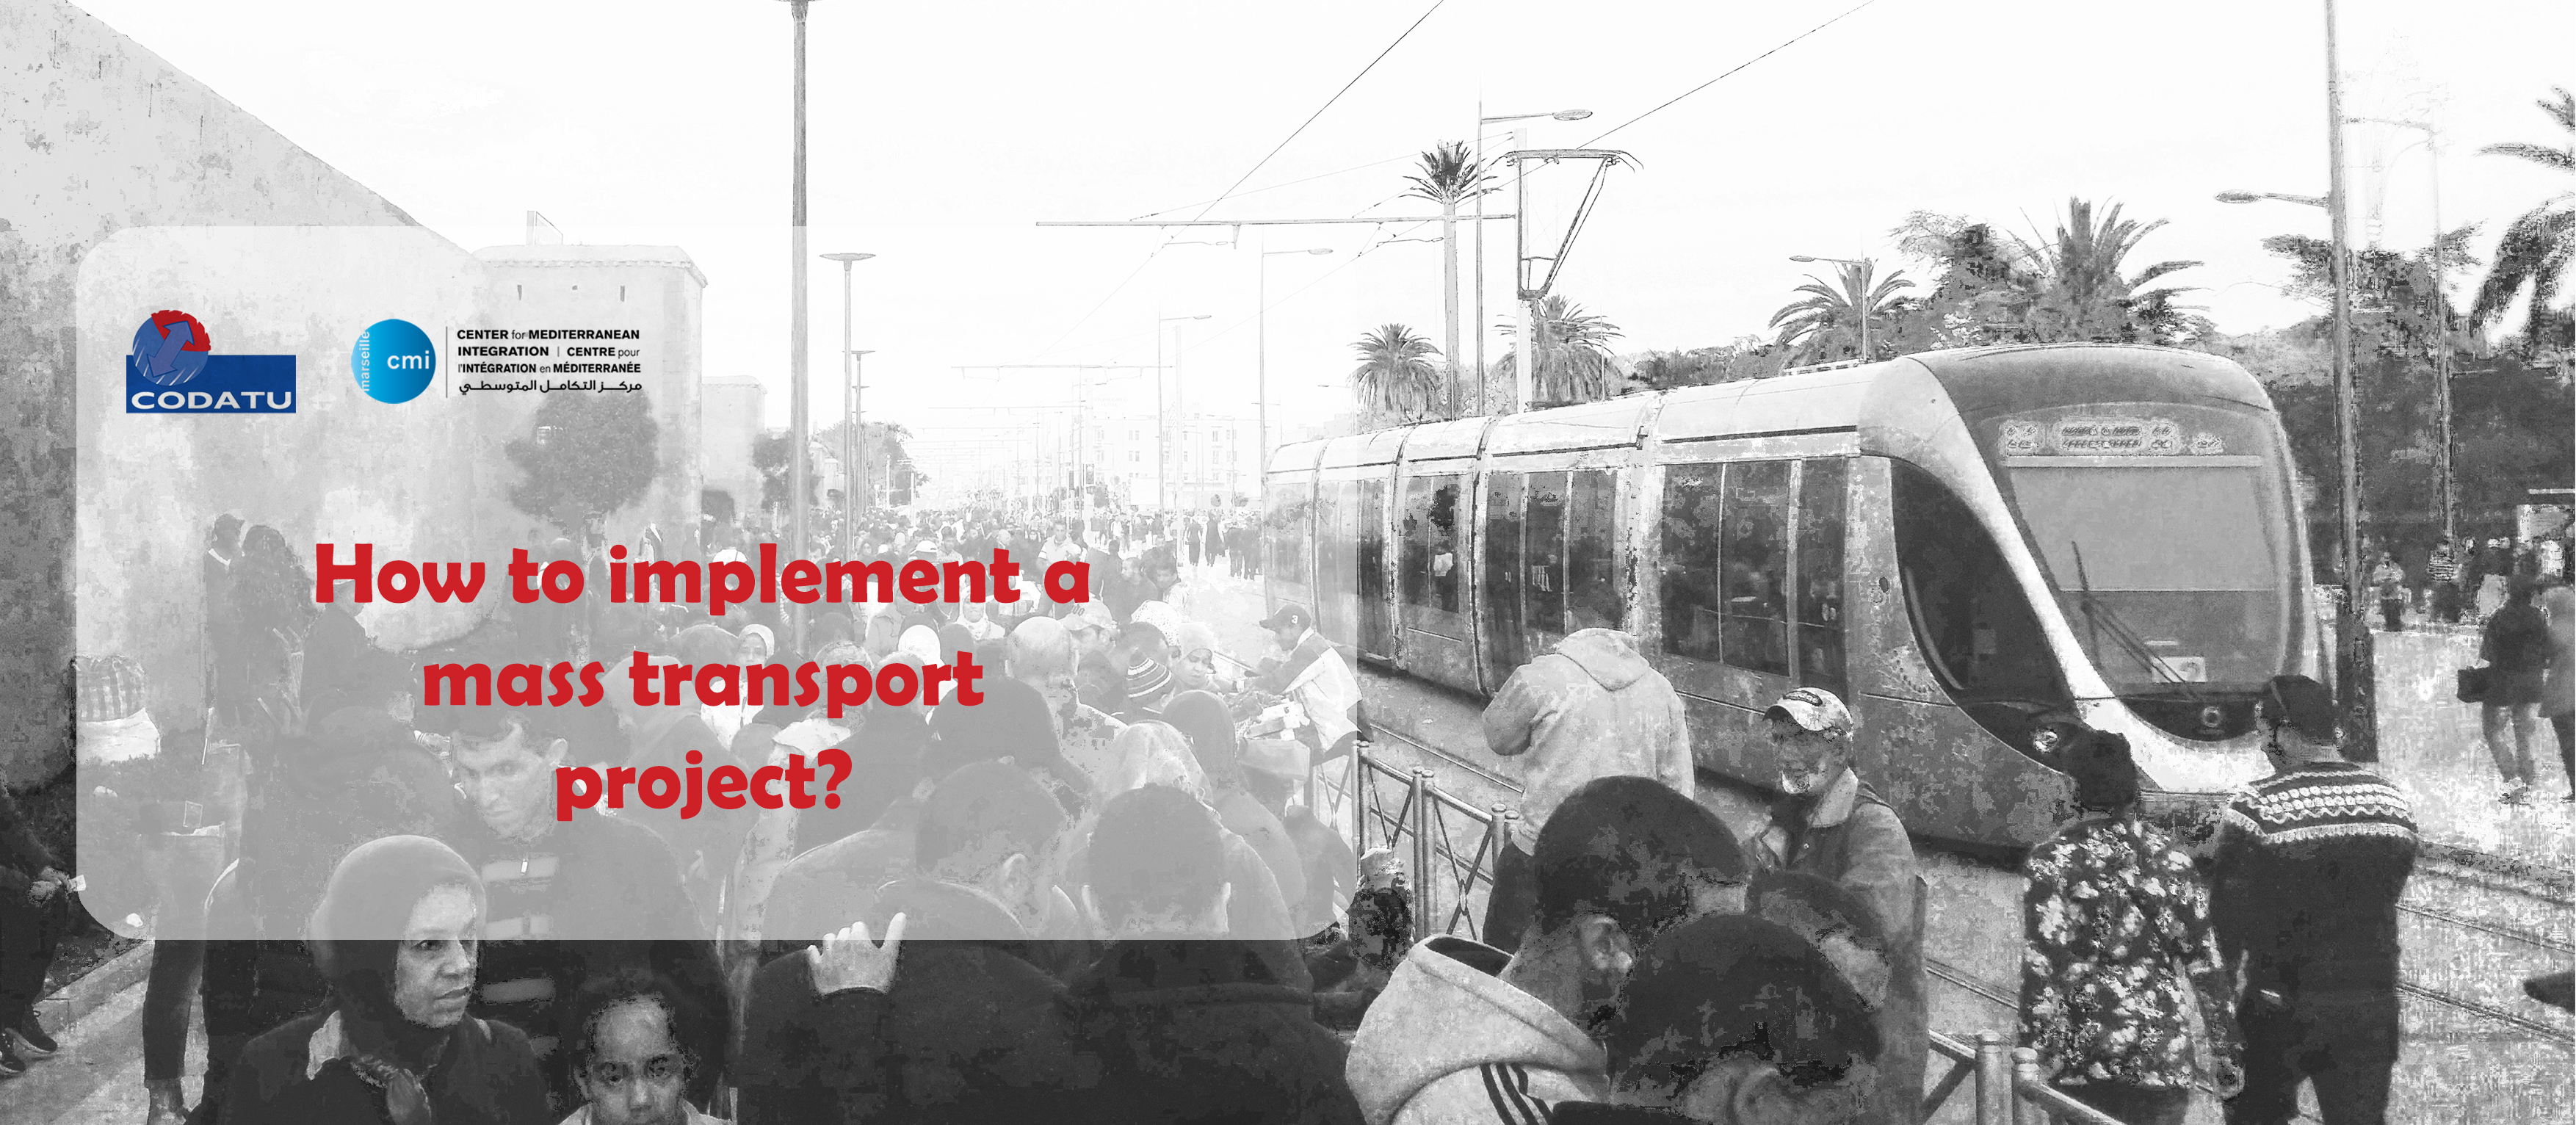 [REPORT] Webinar: How to implement a mass transit project?